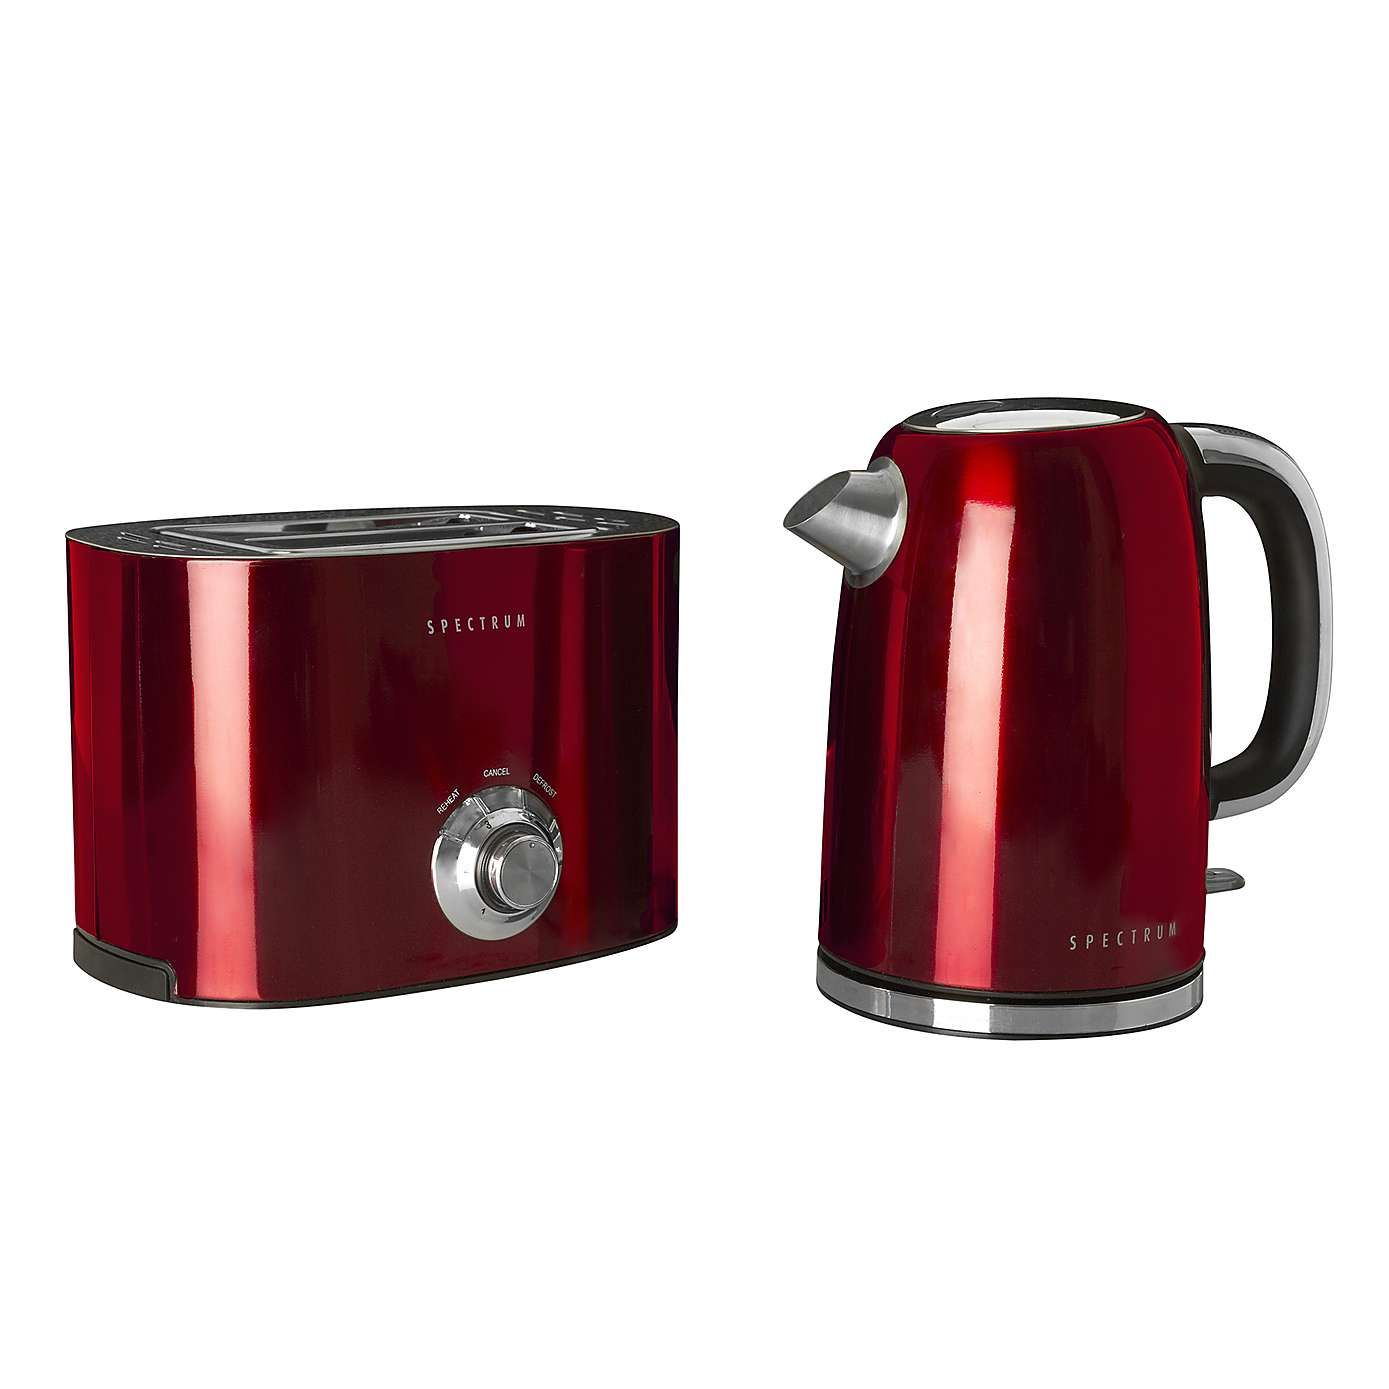 Red Spectrum Kettle and Toaster Set | Kettle and toaster set